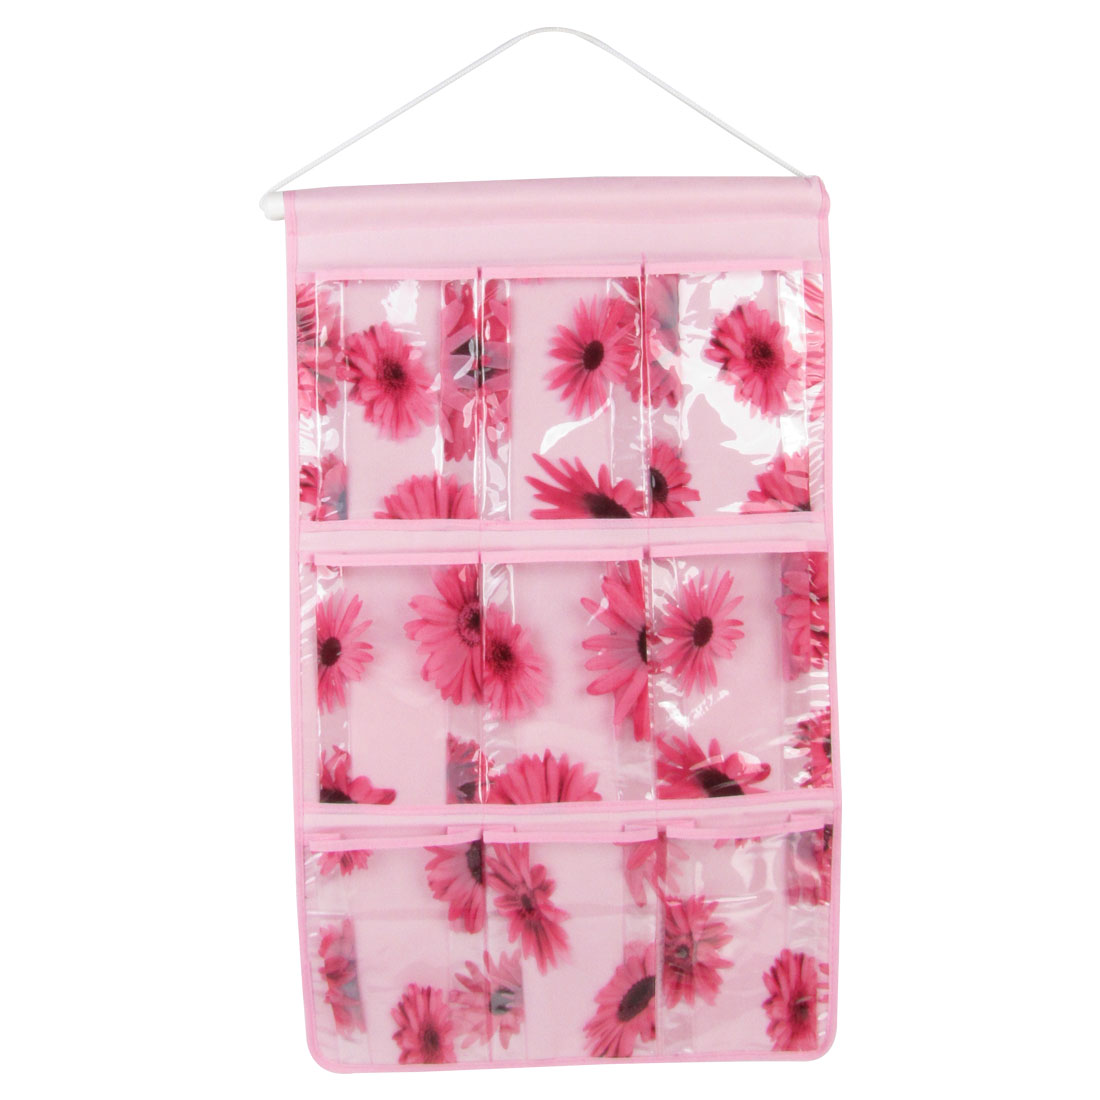 Sunflower Print 9 Pockets PVC Organizer Storage Bag Pink w Hanging Stick